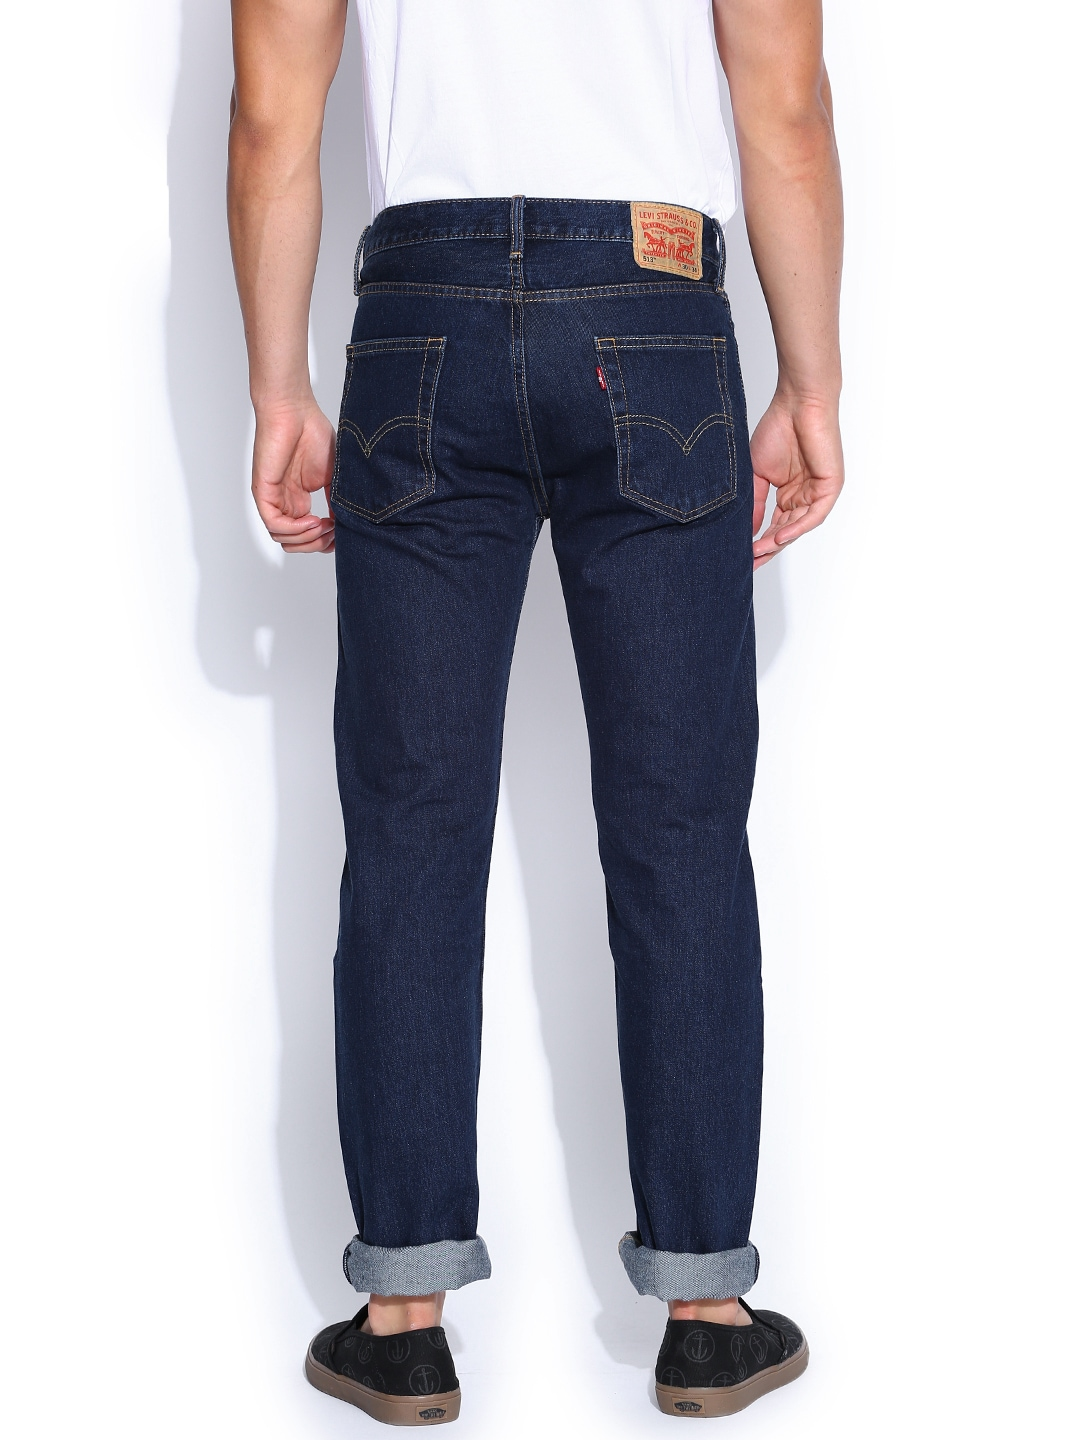 - Levis Jeans - Buy Levis Jeans Online In India- Myntra